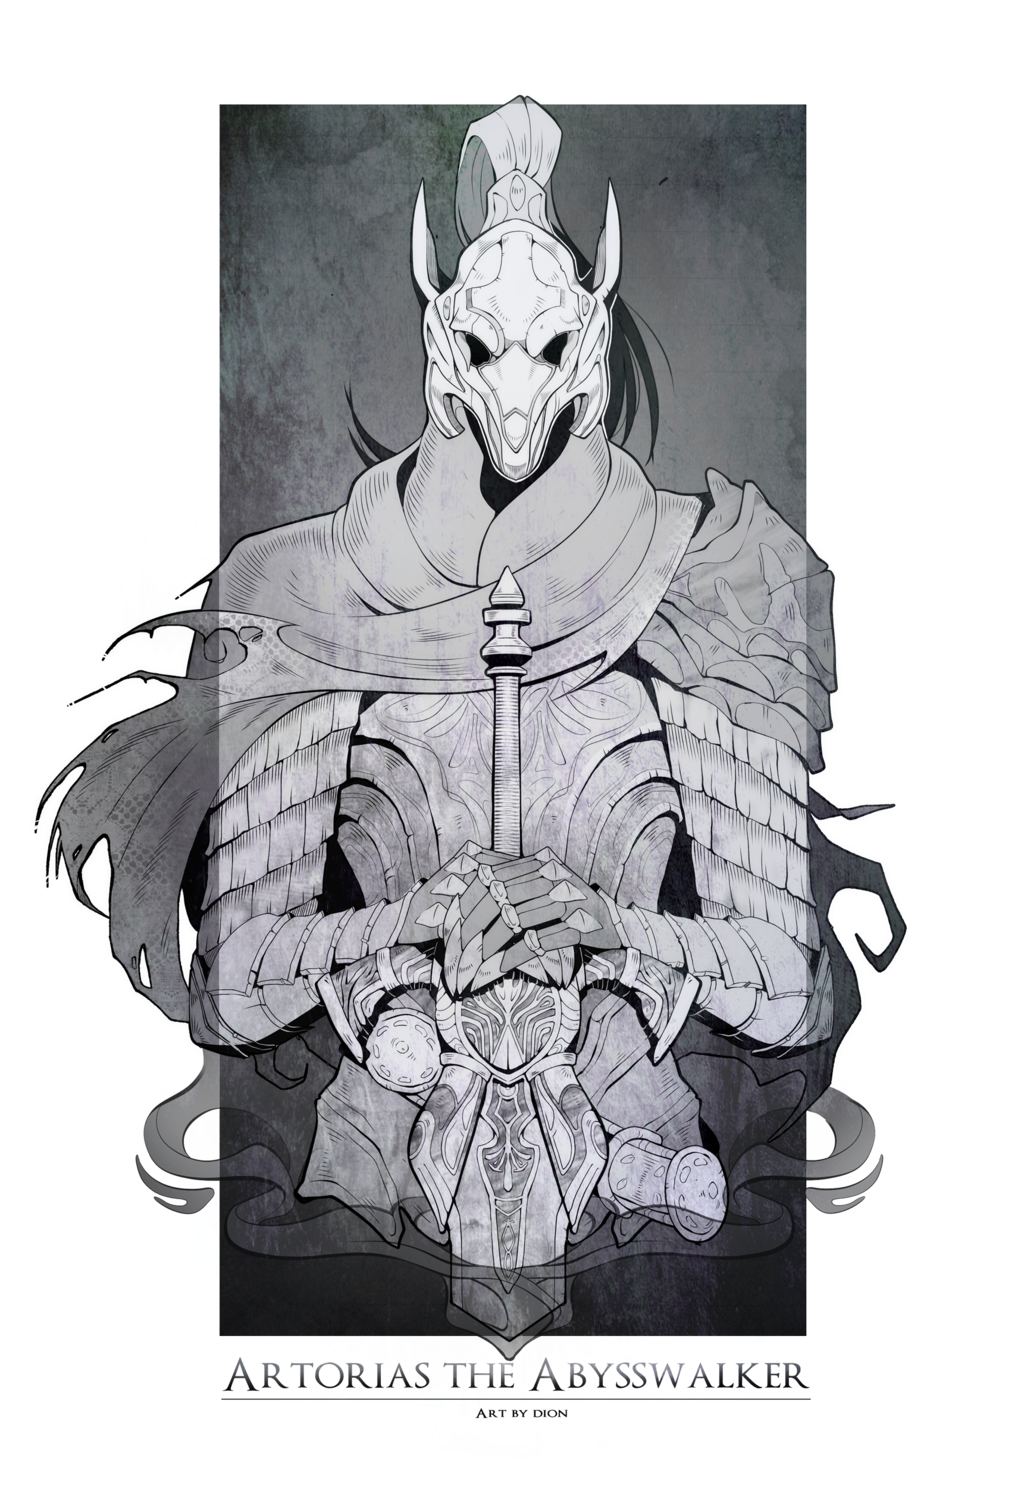 Most recent image: Artorias the Abysswalker